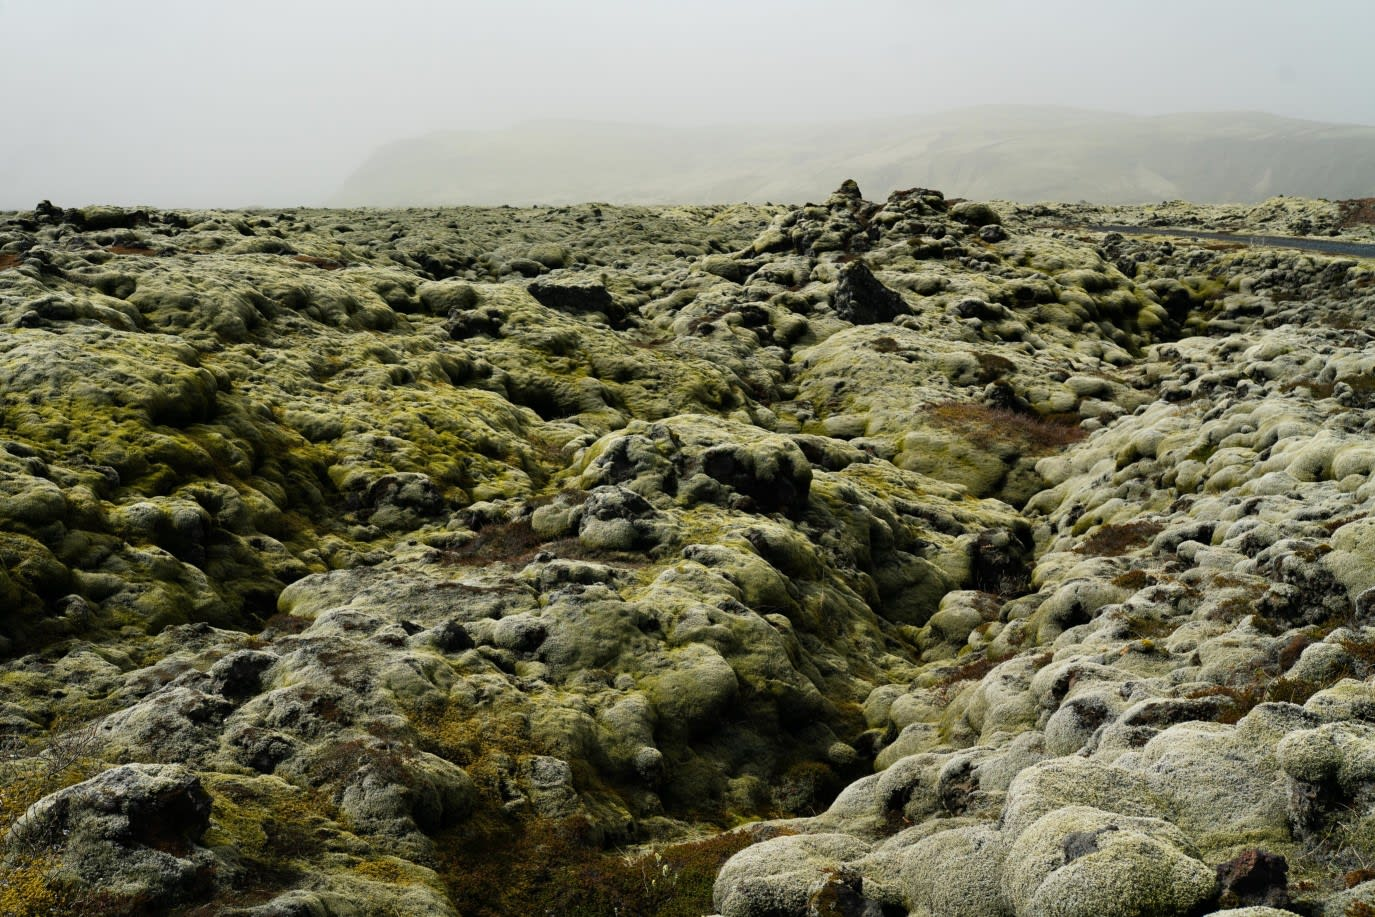 A view of the moss-covered volcanic landscape in Iceland